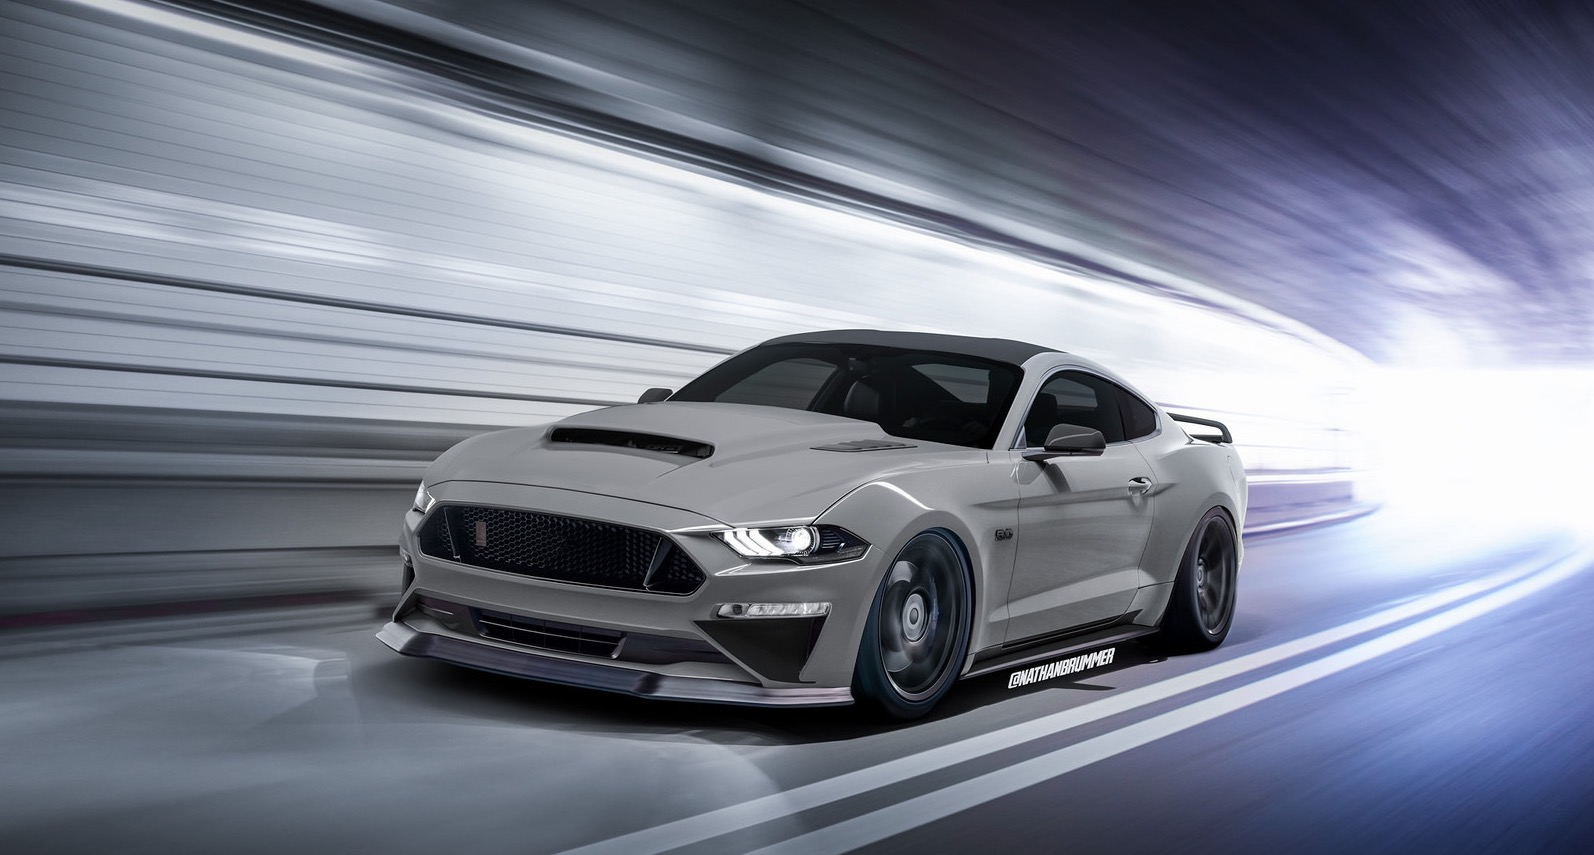 5 Photos 2019 Shelby Gt500 Mustang